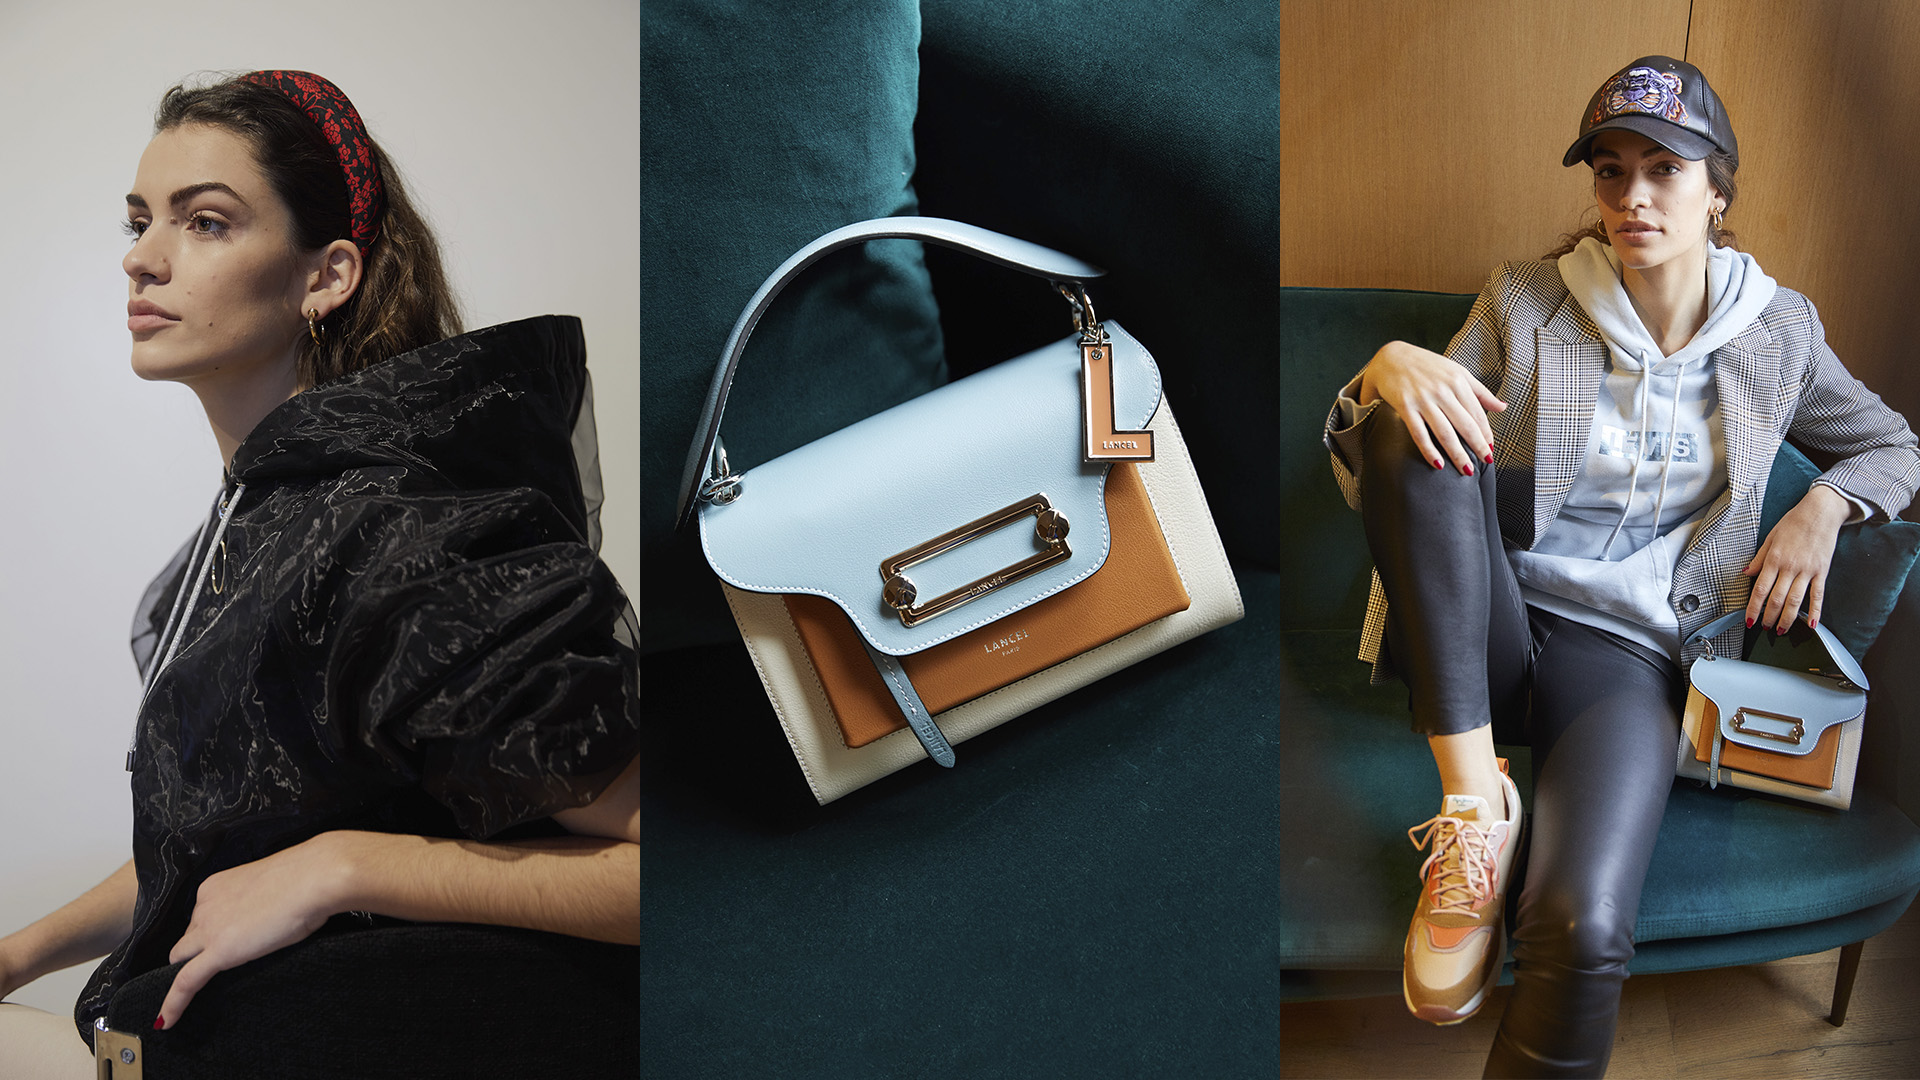 Collage with 3 images from La Roca Village and product focus on a Lancel bag